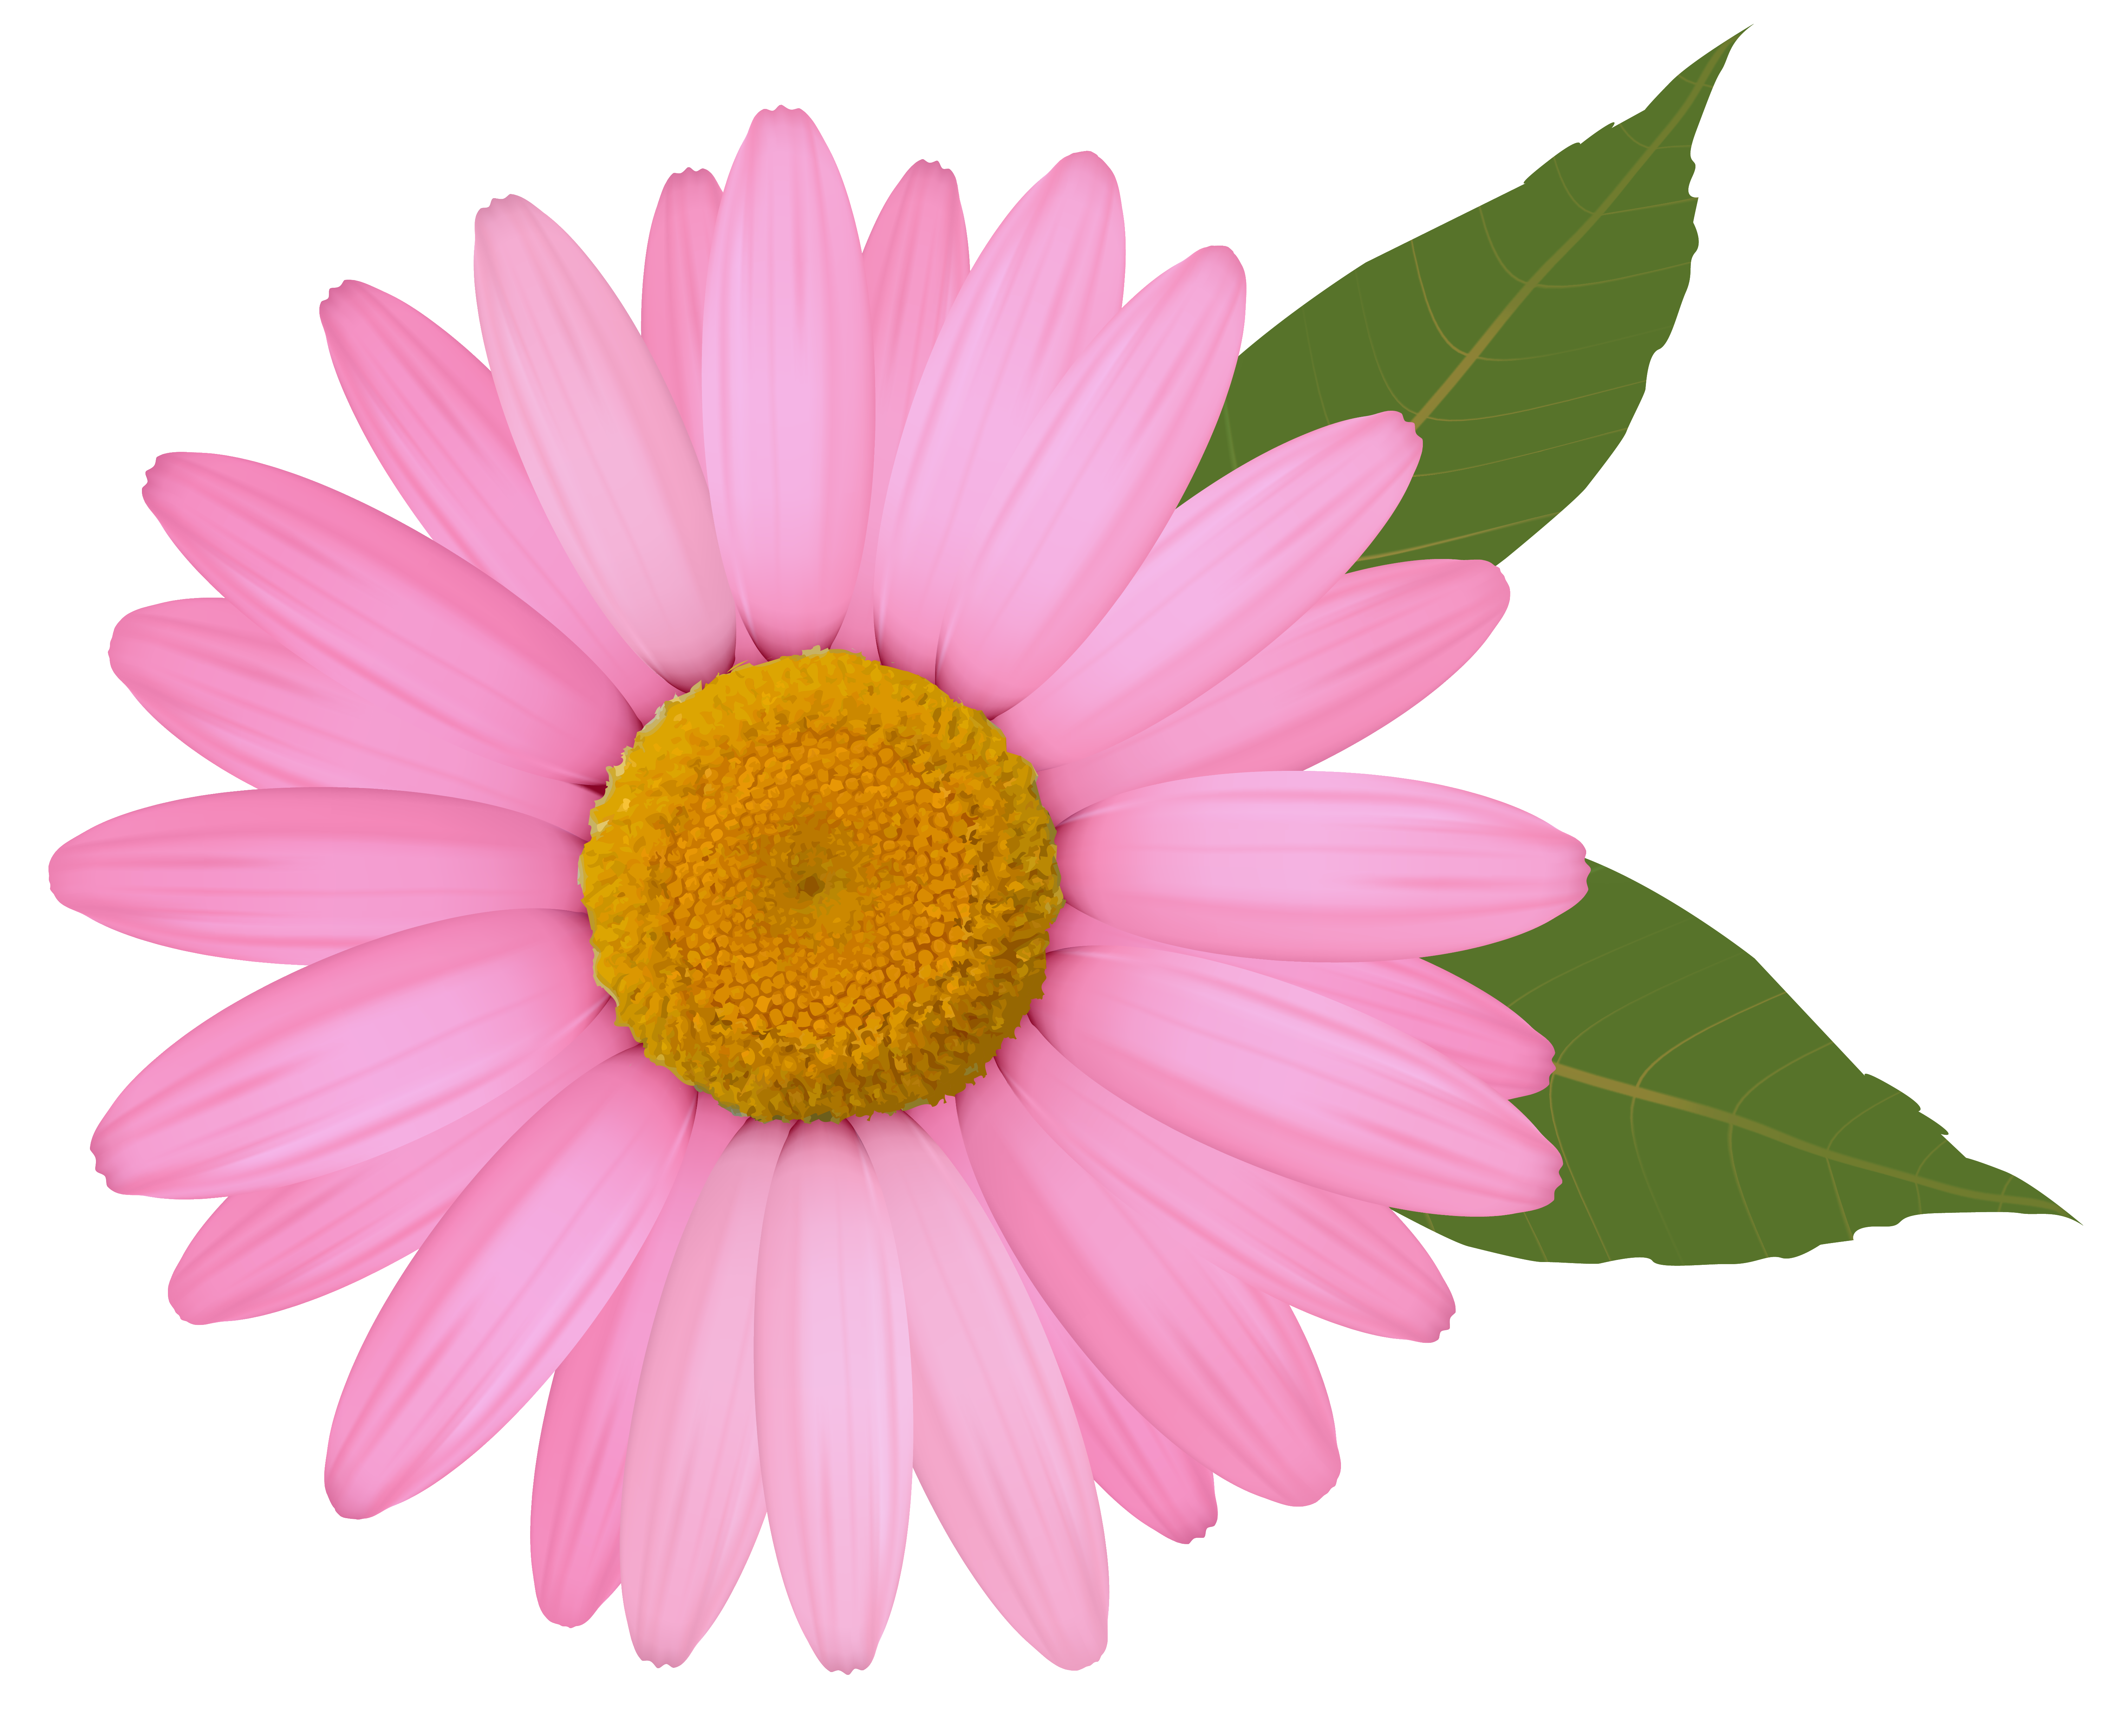 6006x4941 Pink Daisy PNG Clipart Imageu200b Gallery Yopriceville